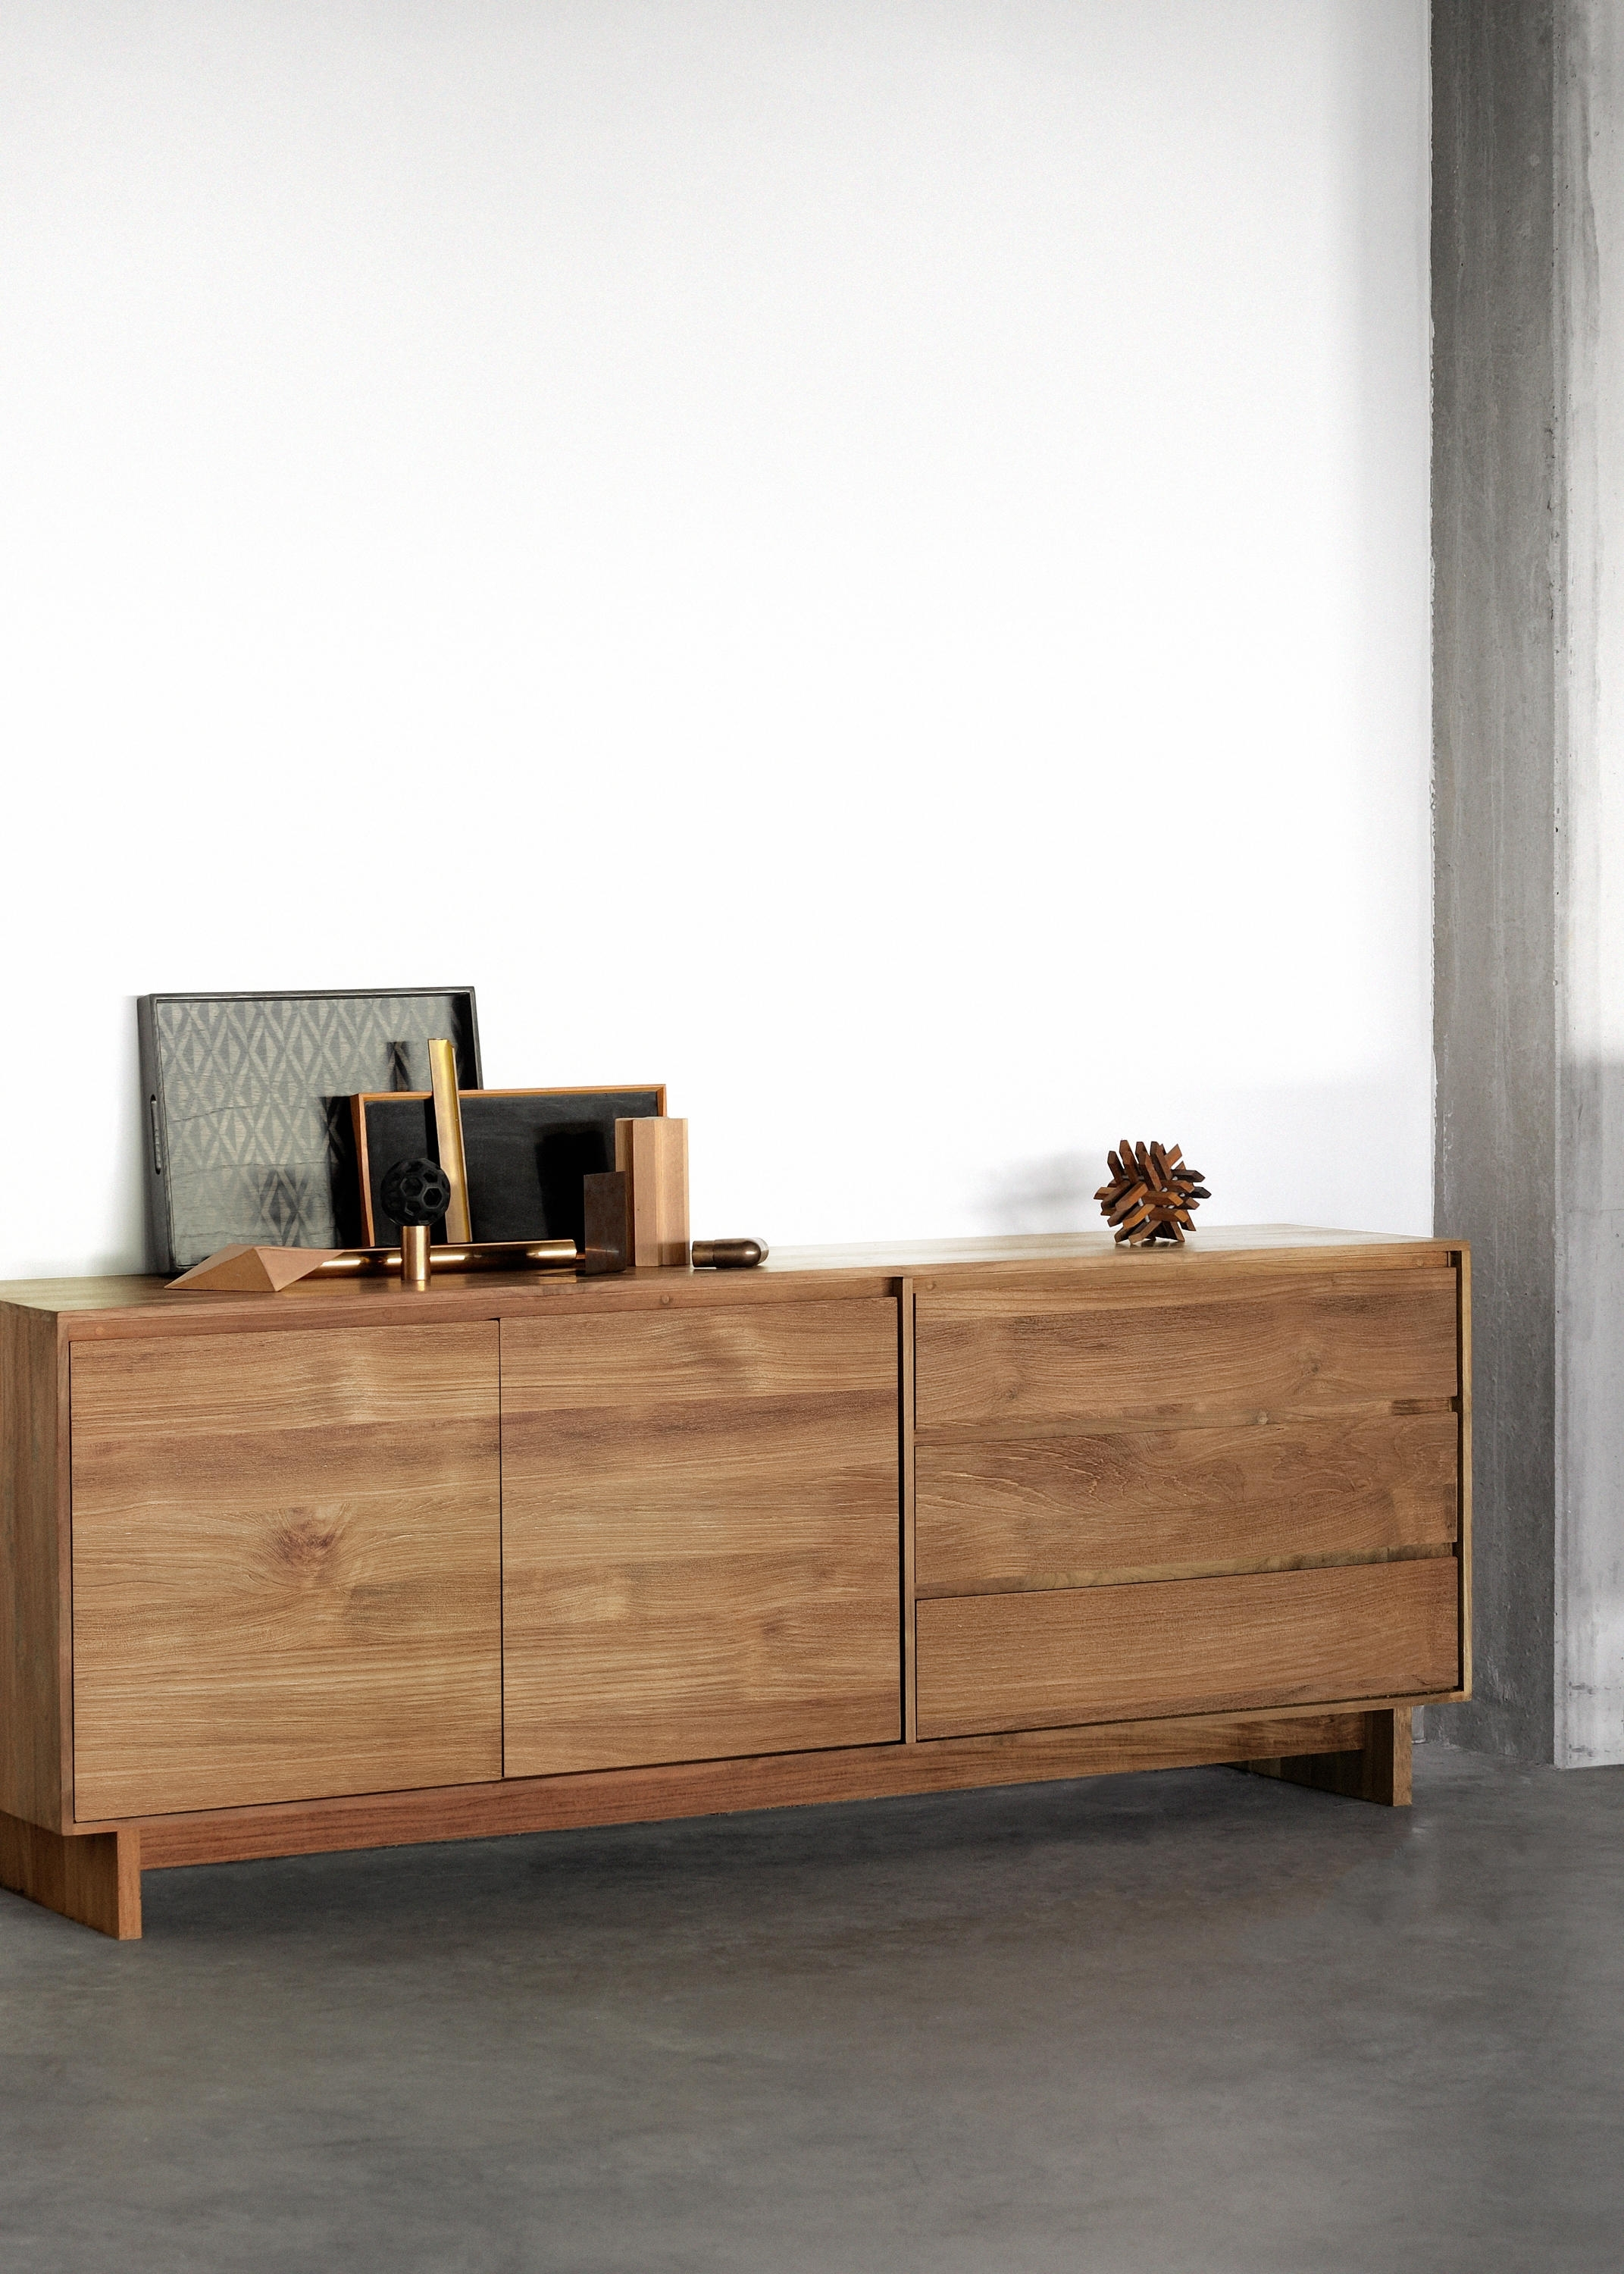 Inspiration about Teak Wave Sideboard – Sideboards From Ethnicraft | Architonic Regarding Current Calhoun Sideboards (#18 of 20)